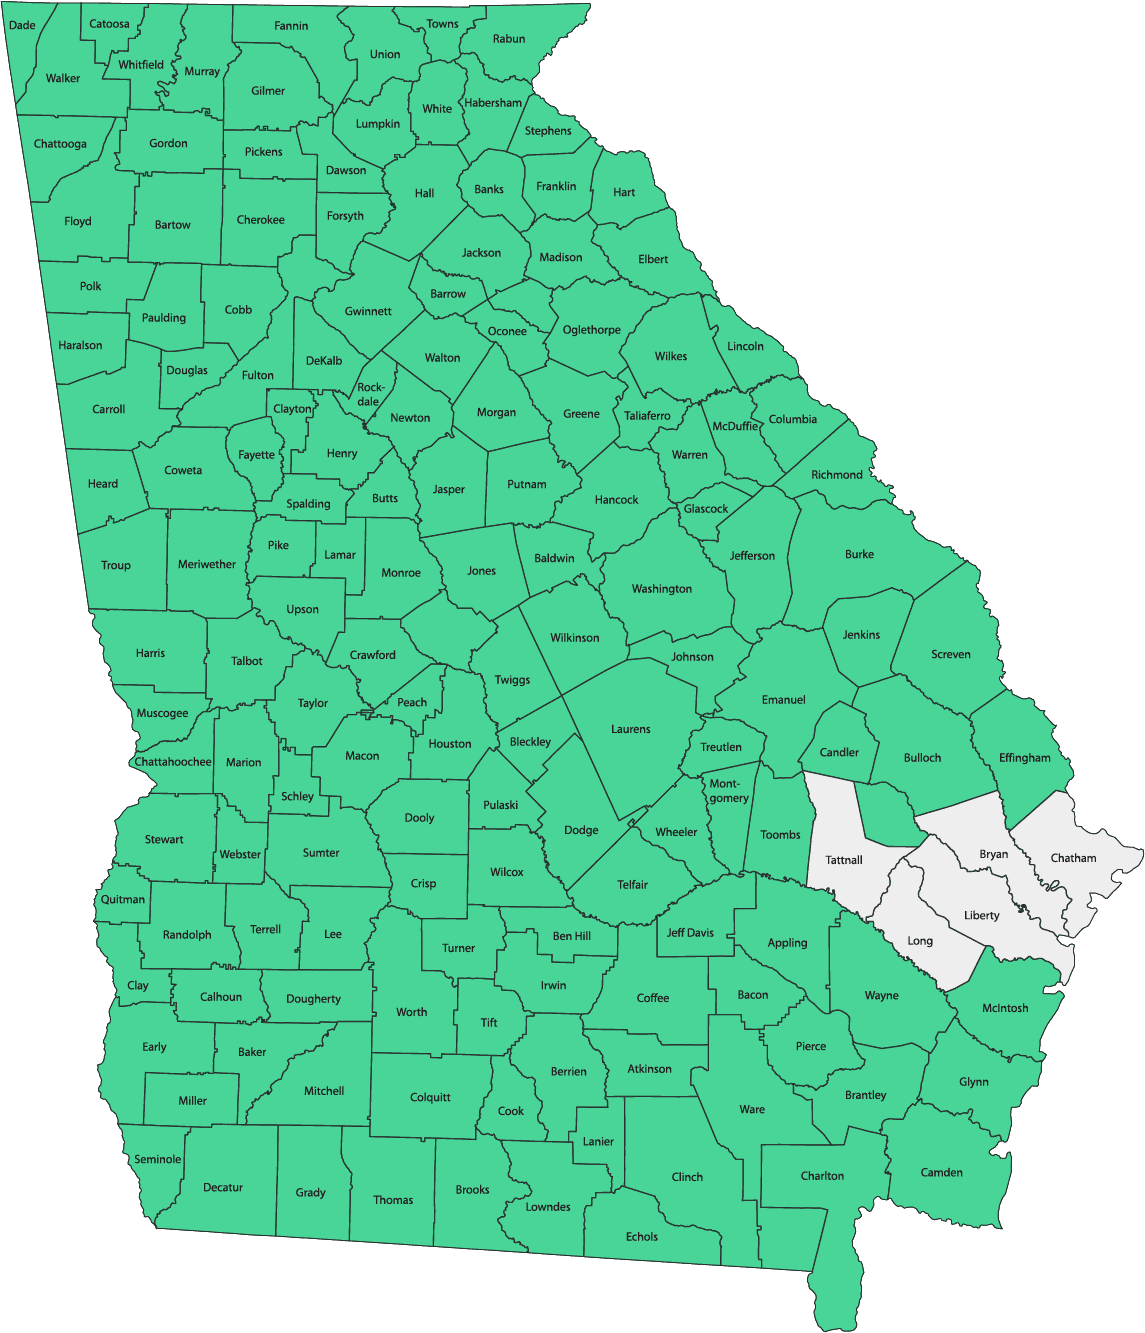 Availability by County in Georgia